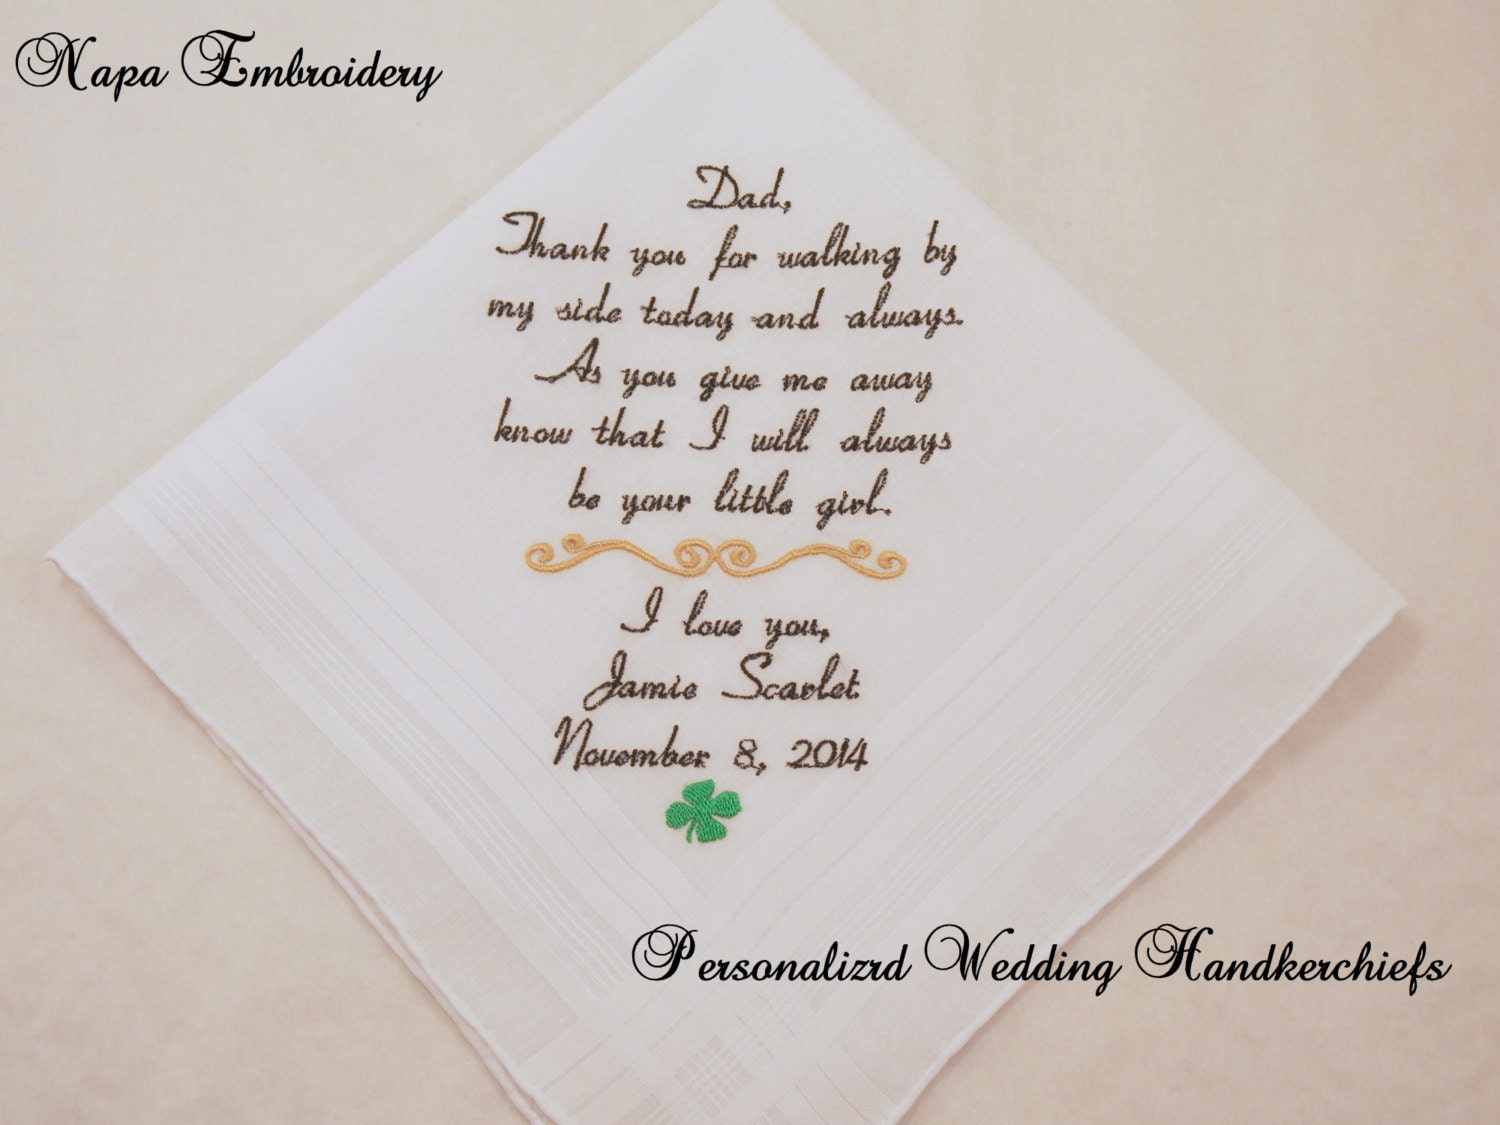 Wedding Gifts South Africa: WEDDING GIFTS For Father Of The BRIDE Personalized Embroidered